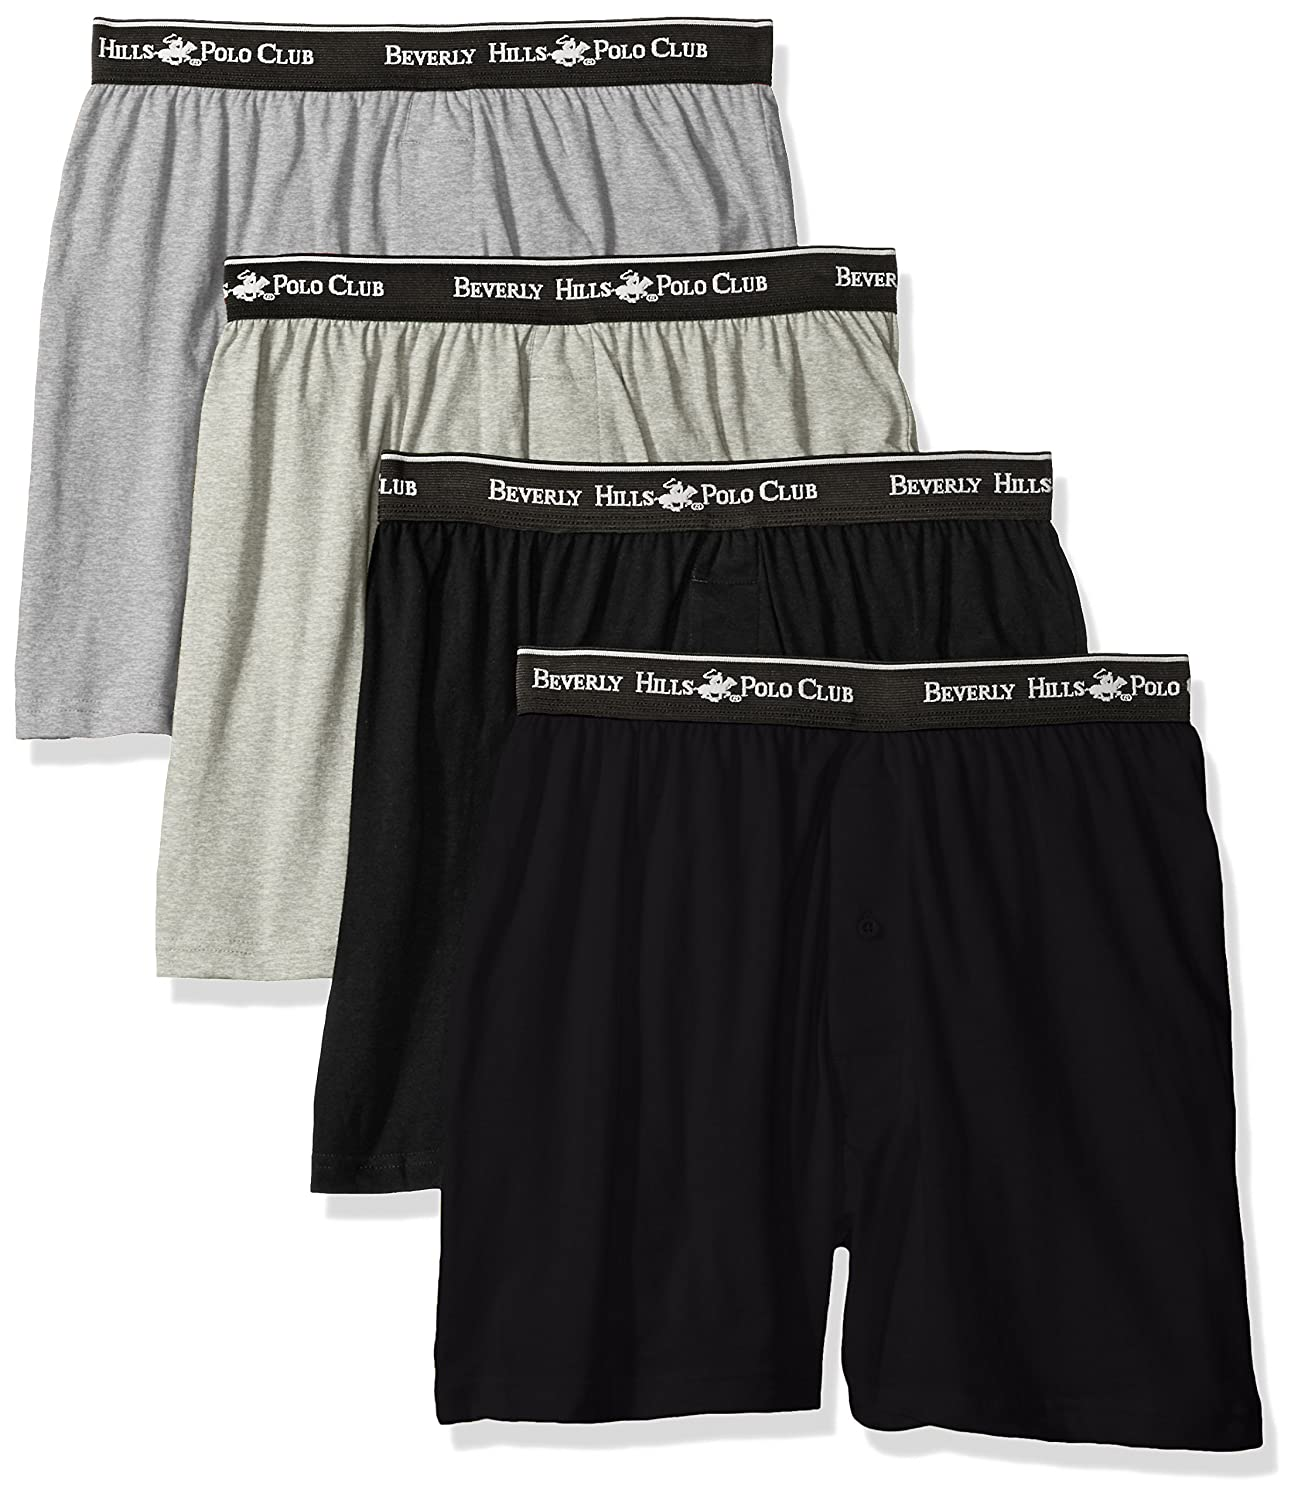 Beverly Hills Polo Club Men's 4 Pack Knit Boxer M1007KG